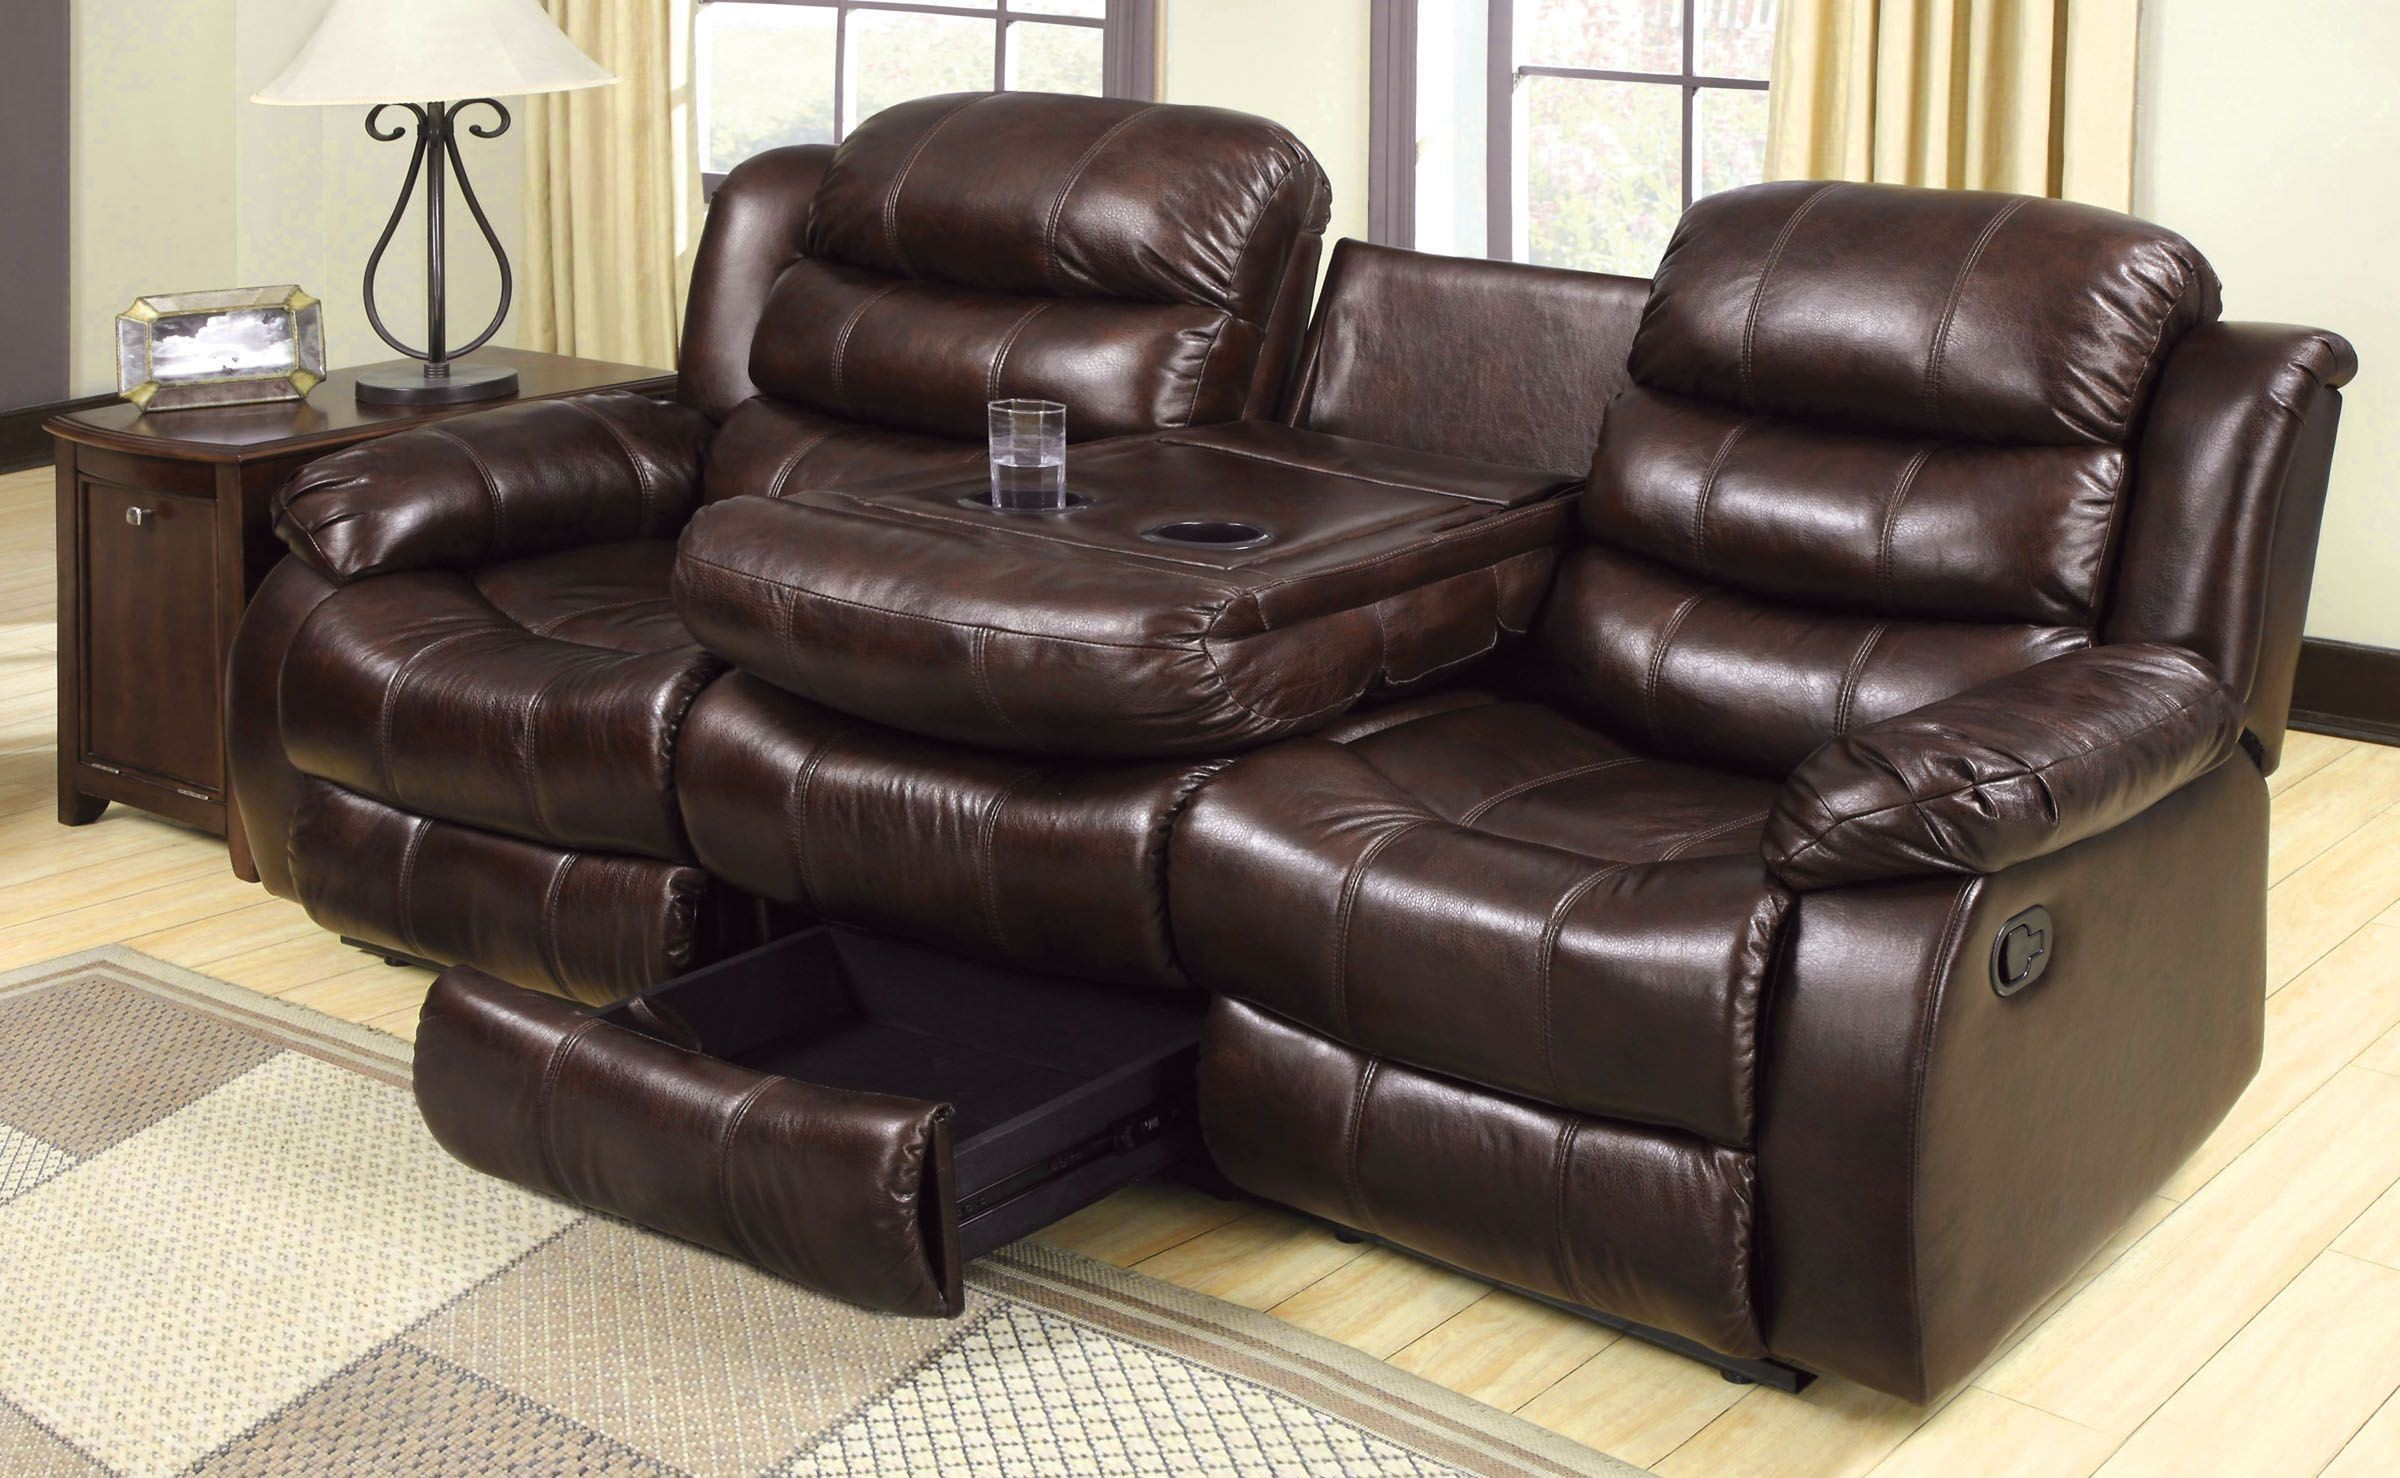 Berkshire Rustic Brown Reclining Sofa With Center Console From Furniture Of America Cm6551 S